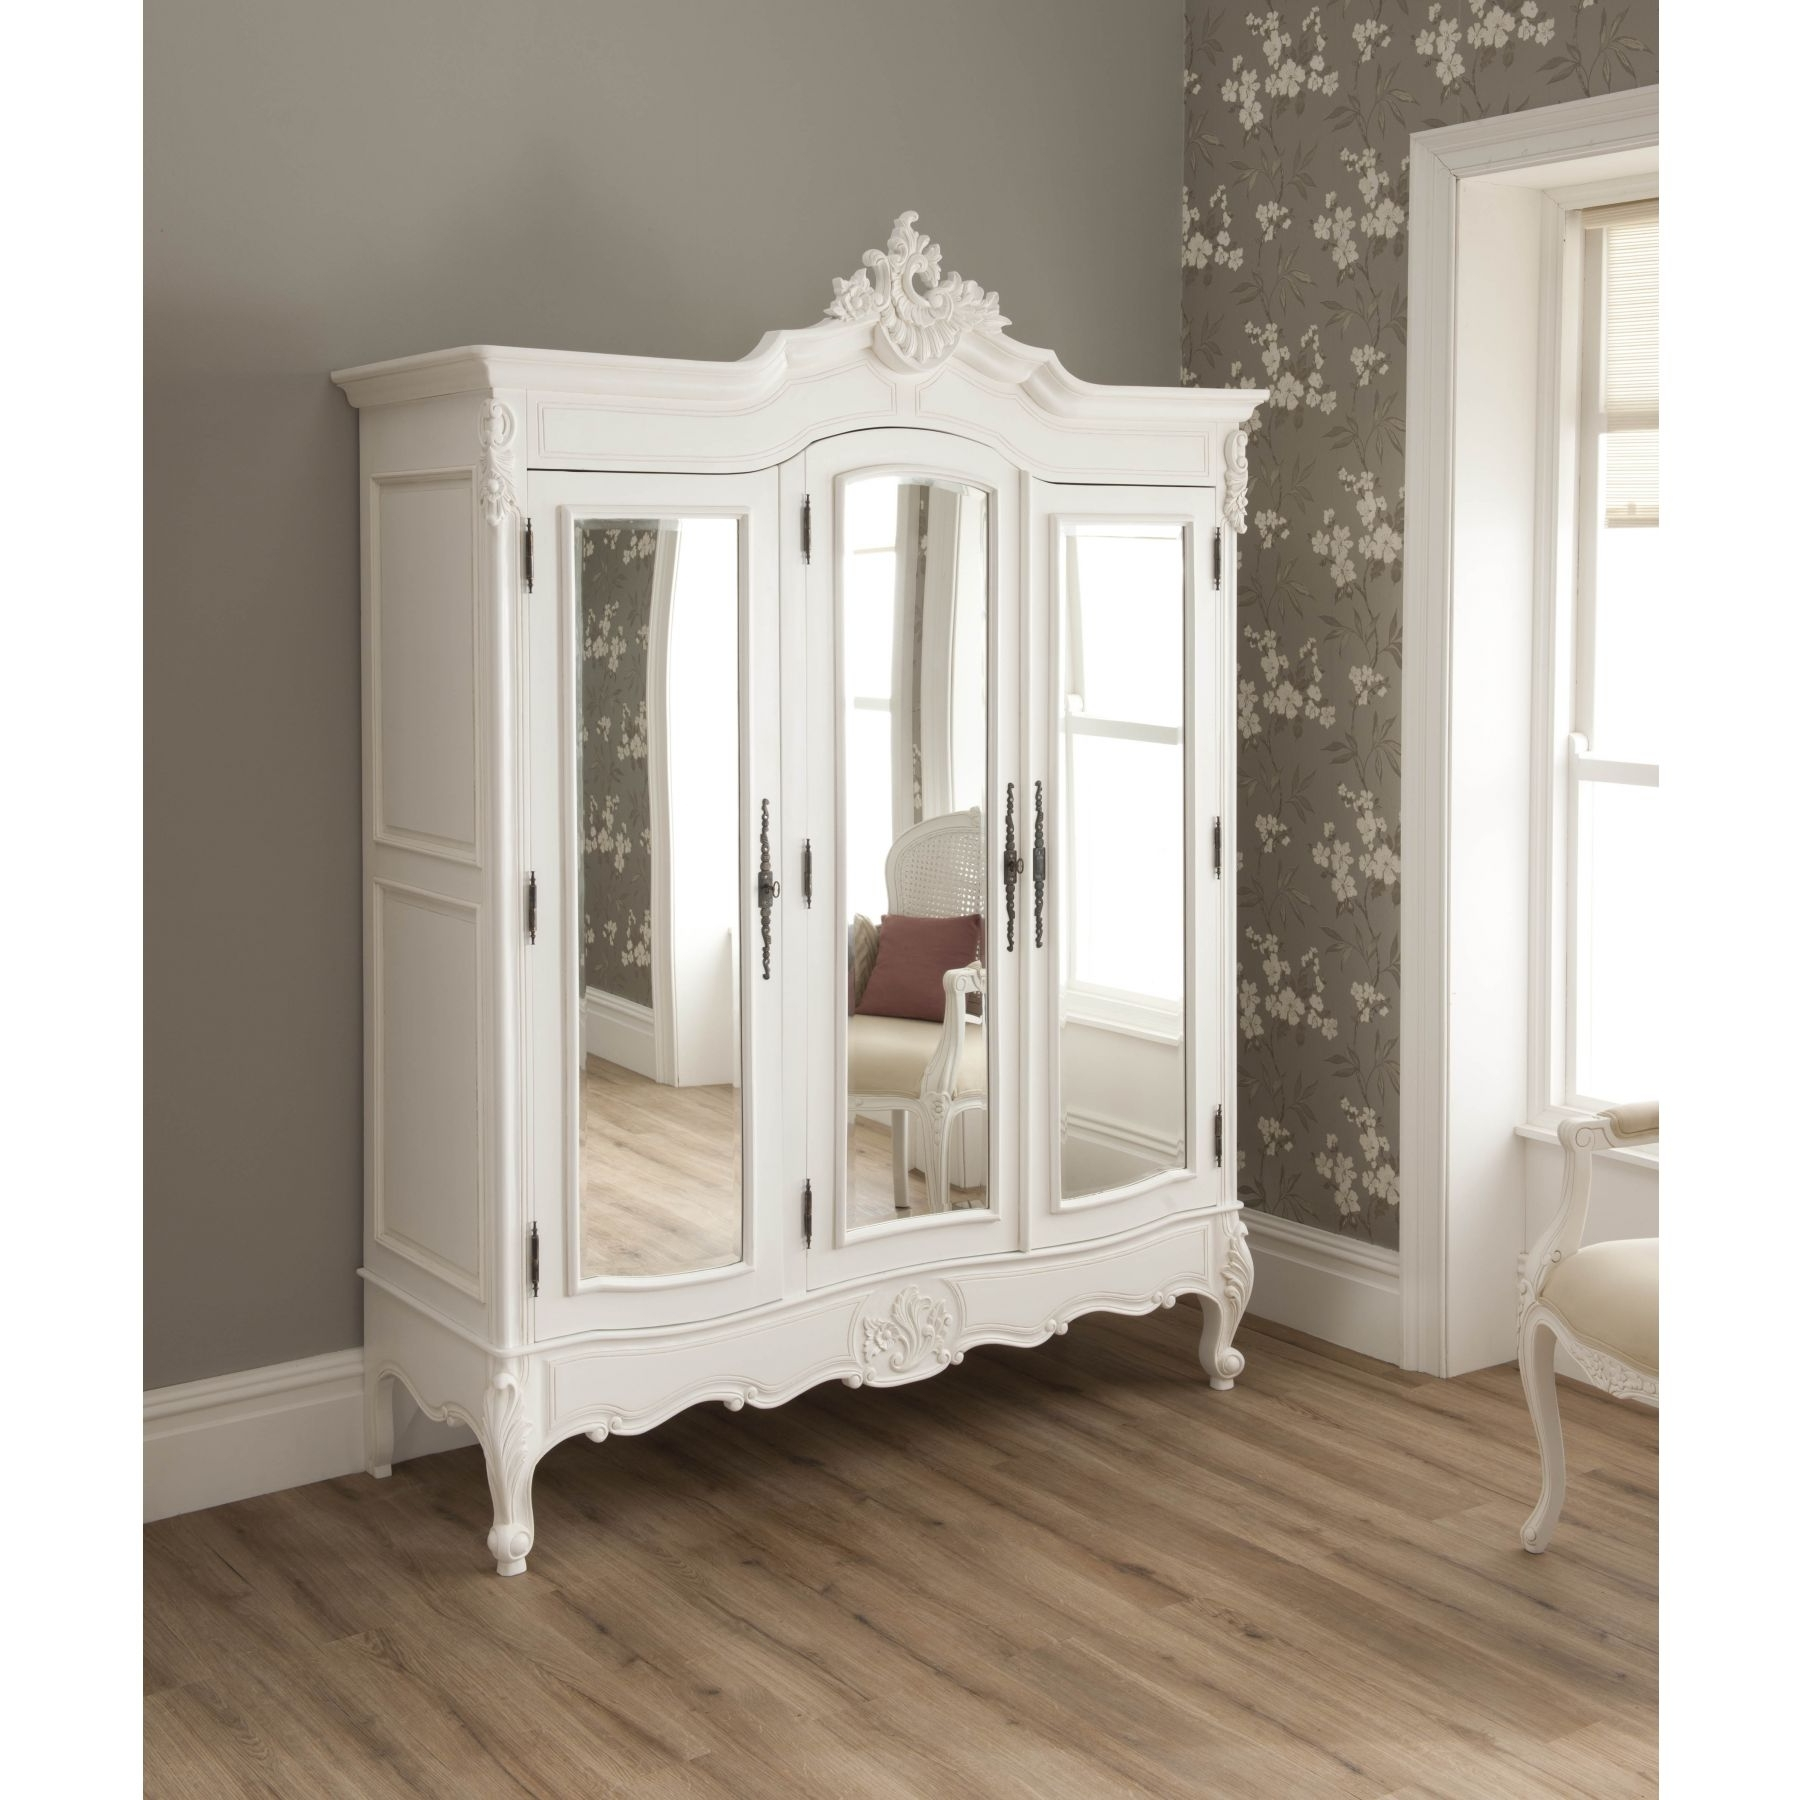 Shabby Chic Furniture With Regard To Trendy 3 Door French Wardrobes (View 13 of 15)